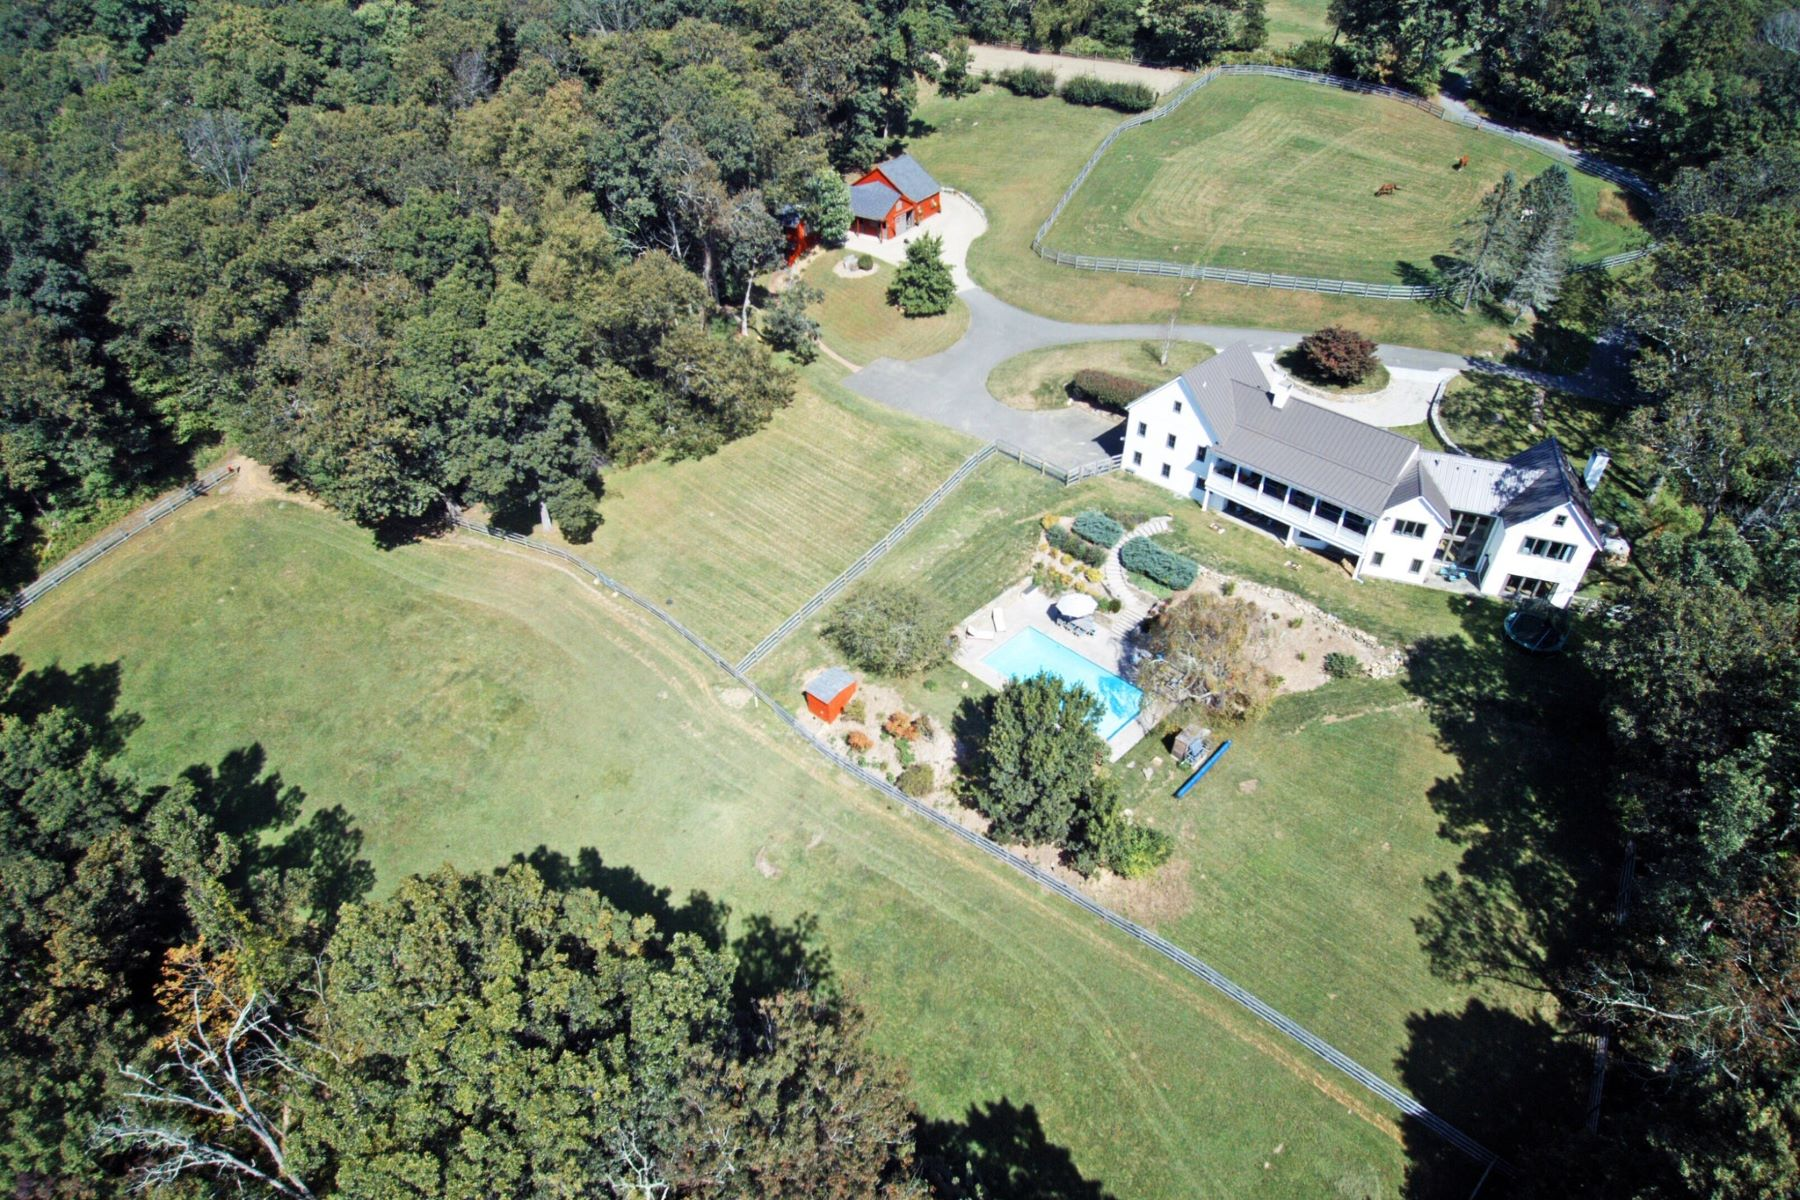 Single Family Homes for Sale at 18 Acre Equestrian Homestead 115 Cross Hwy Redding, Connecticut 06896 United States